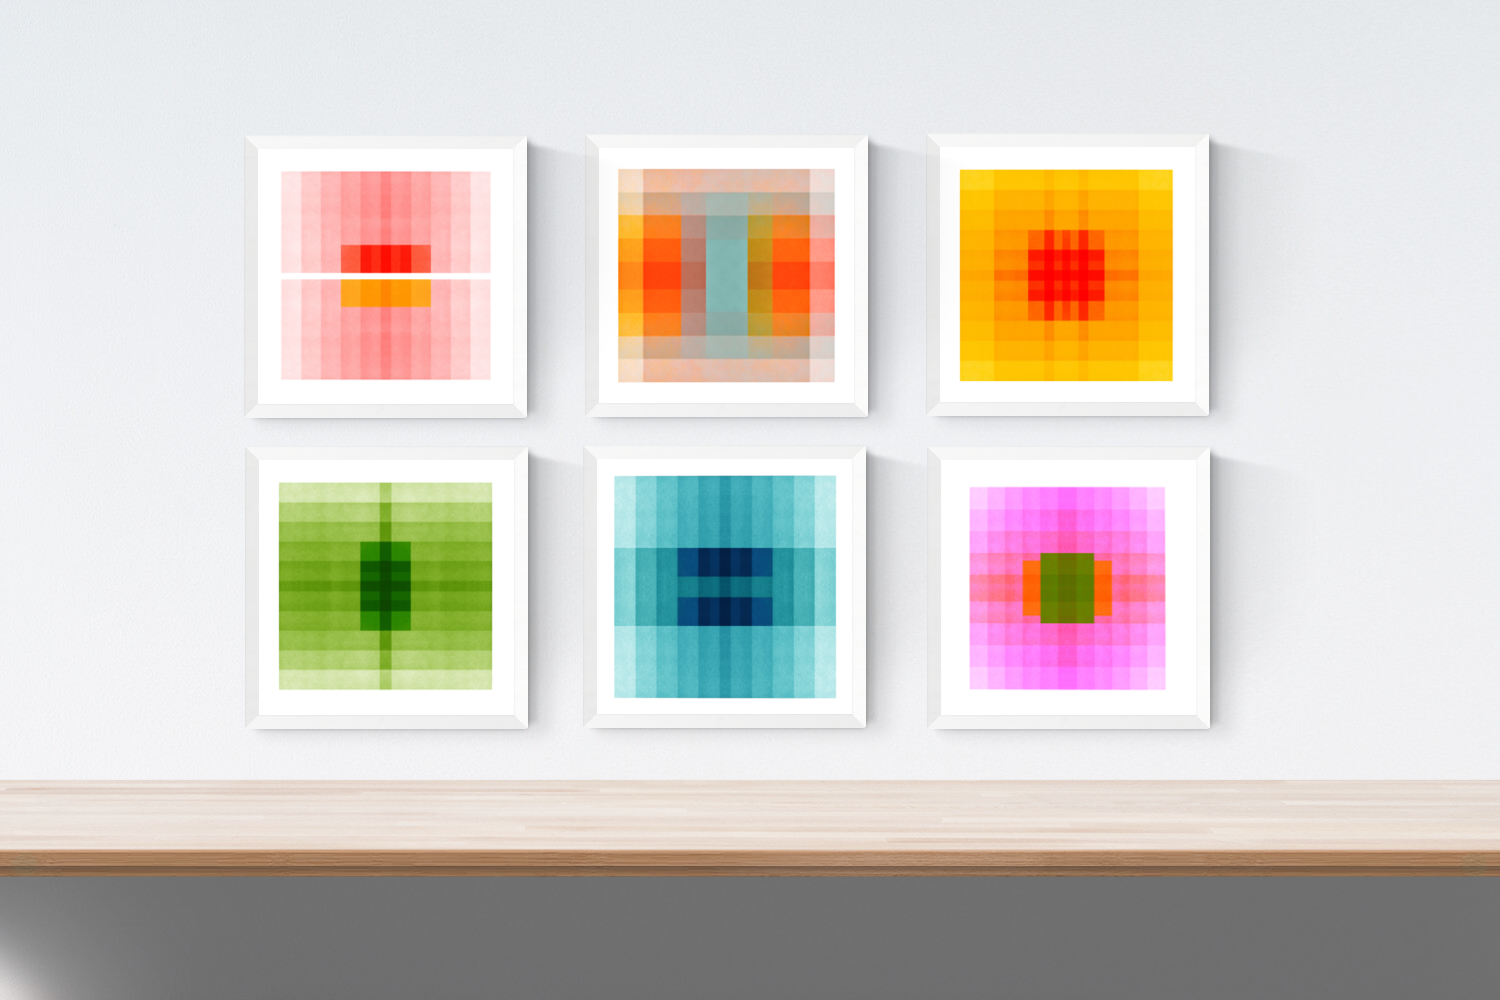 A framed set of six Color Space images.  Top Row Left to Right:  Color Space 27 (Pink, Red & Yellow), Color Space 40 (Persimmon, Turquoise & Fawn), Color Space: Sun.  Bottom Row Left to Right:  Color Space 29 (Spring Green), Color Space 30 (Ocean Blue), Color Space 36 (Ultraviolet & Green)